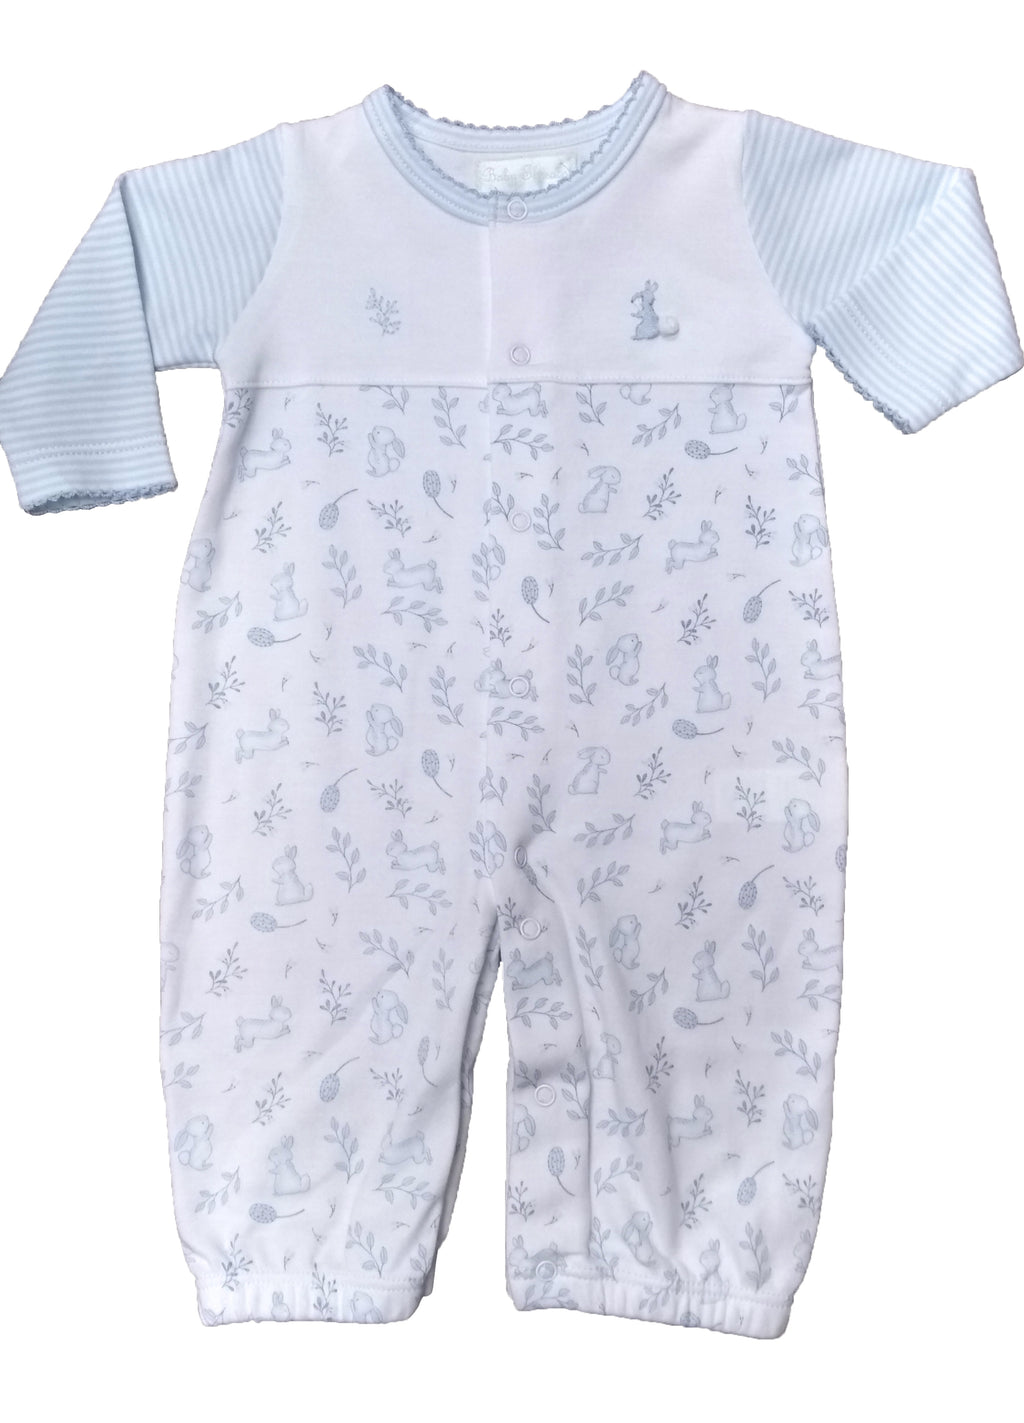 Baby Boy's Blue Bunnies Converter - Little Threads Inc. Children's Clothing